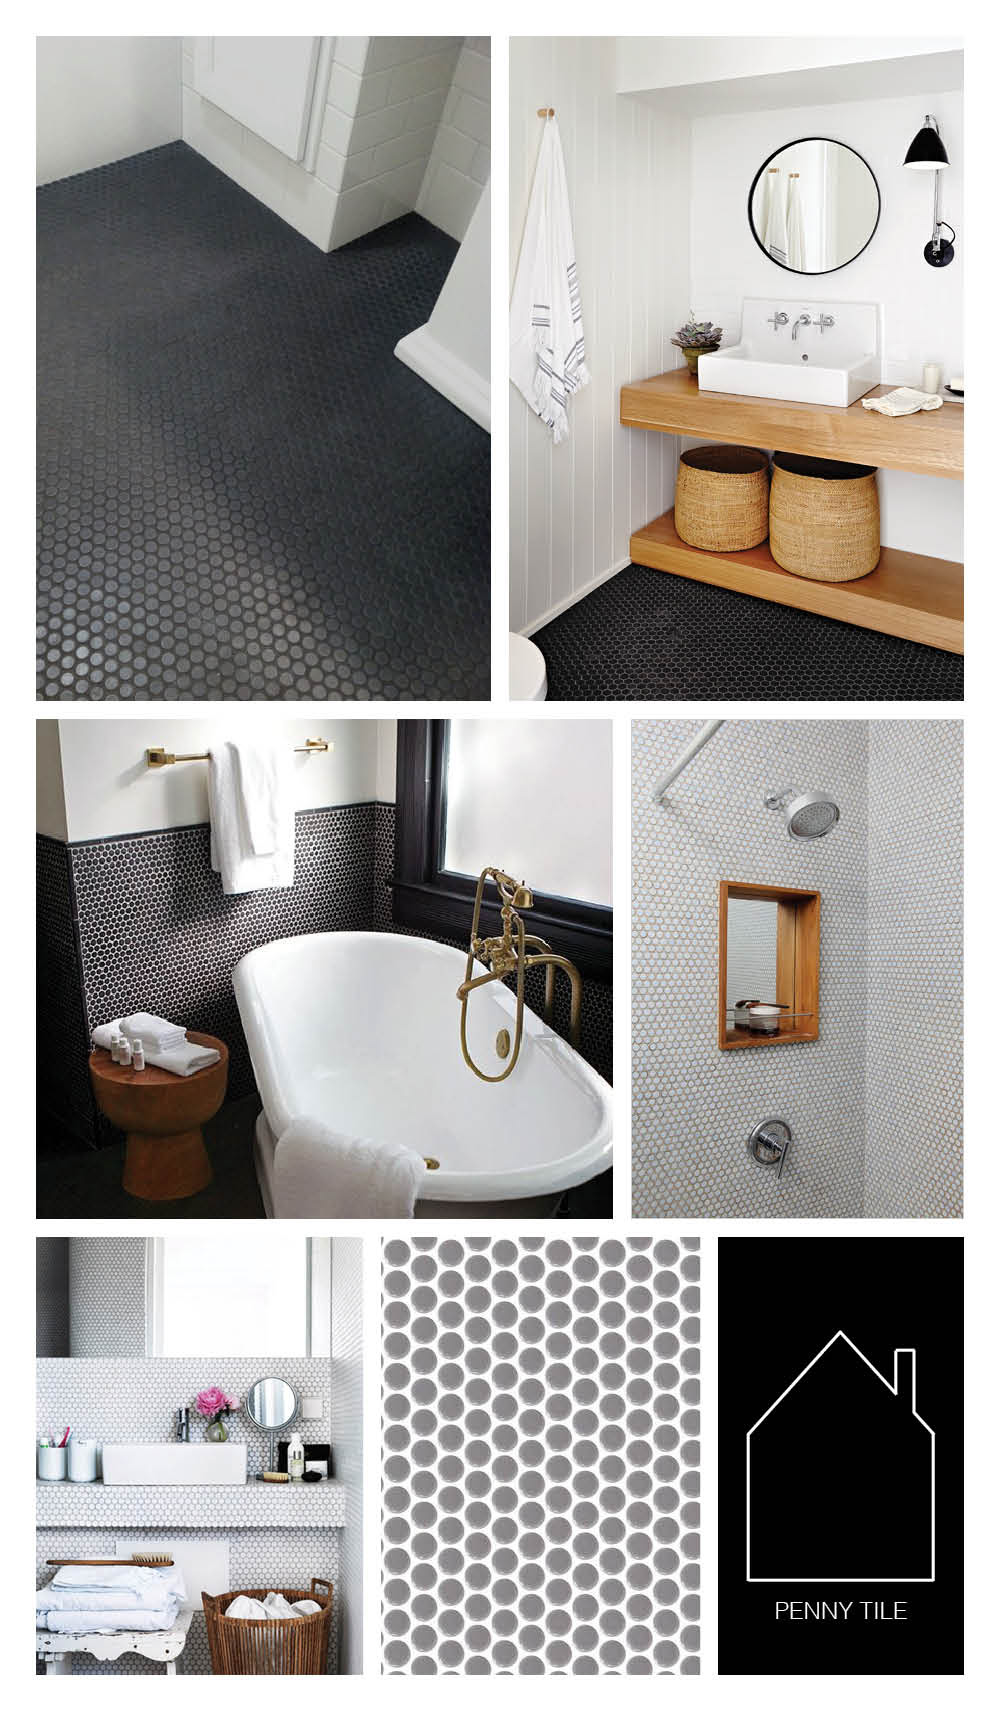 from top left - bathroom of Steve Carbin via  REMODELISTA  - Suzanne Dimma's bathroom via  House & Home  -  Hotel Saint Cecilia  via  REMODELISTA  - home of Todd and Marlene Capron via  NY Times  - source unknown -  retro grounds engine gray  by  Daltile